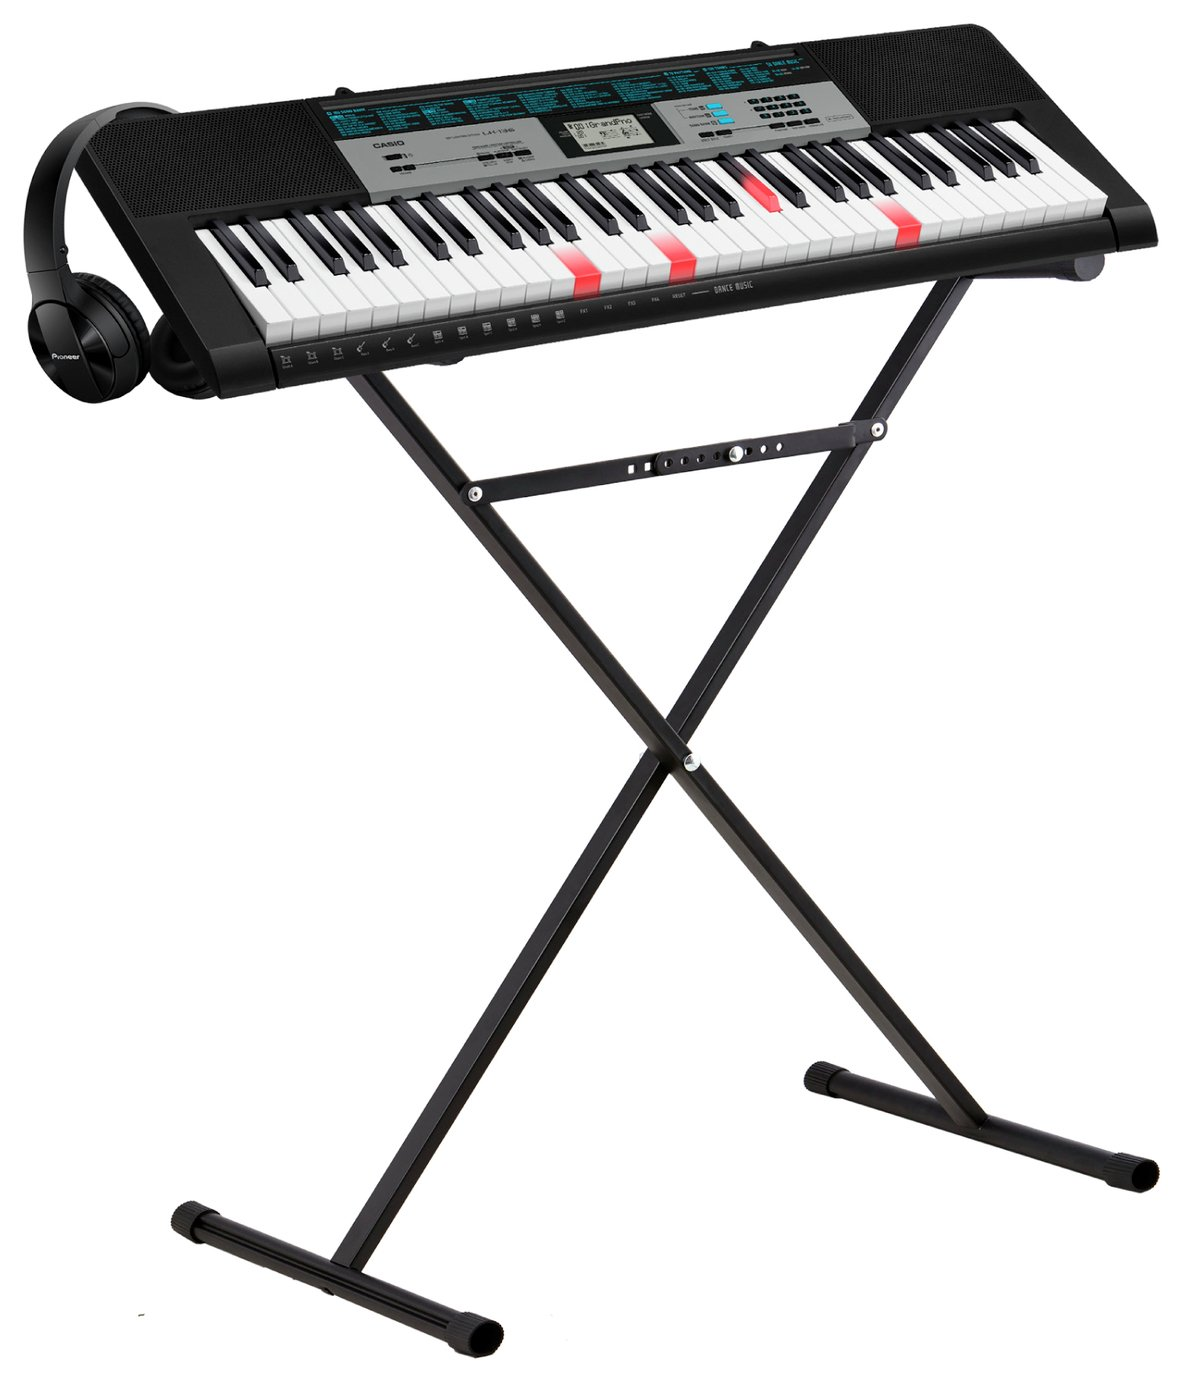 Image of Casio LK-136AD Keyboard with Stand and Headphones